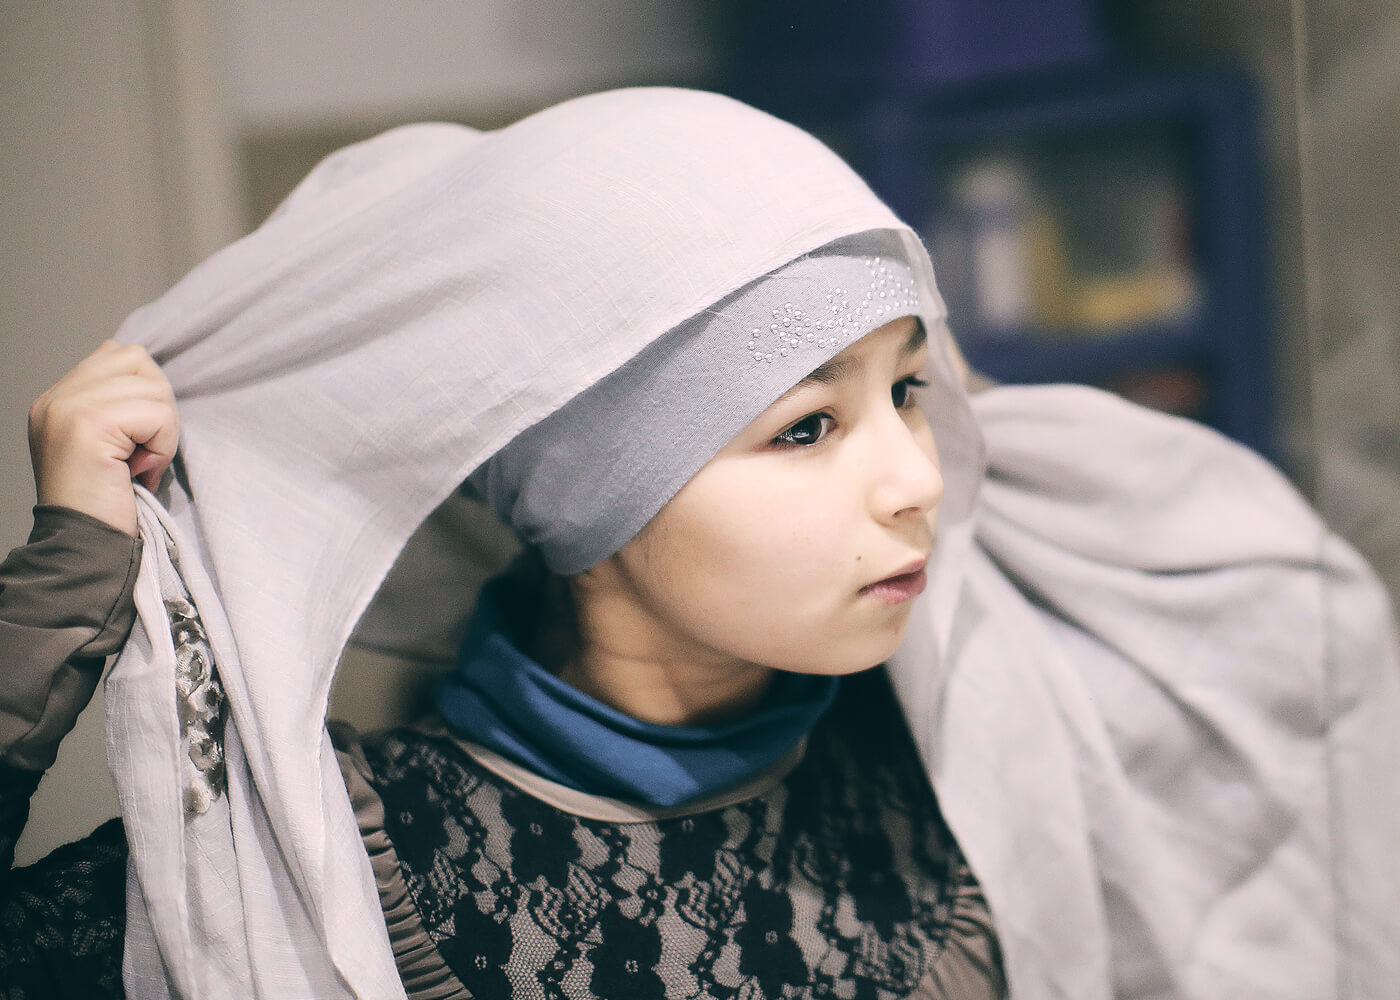 Ten-year-old Sanaa practices putting on her hijab for Islamic Saturday school. She occasionally wears a veil to go to school during the week as well.